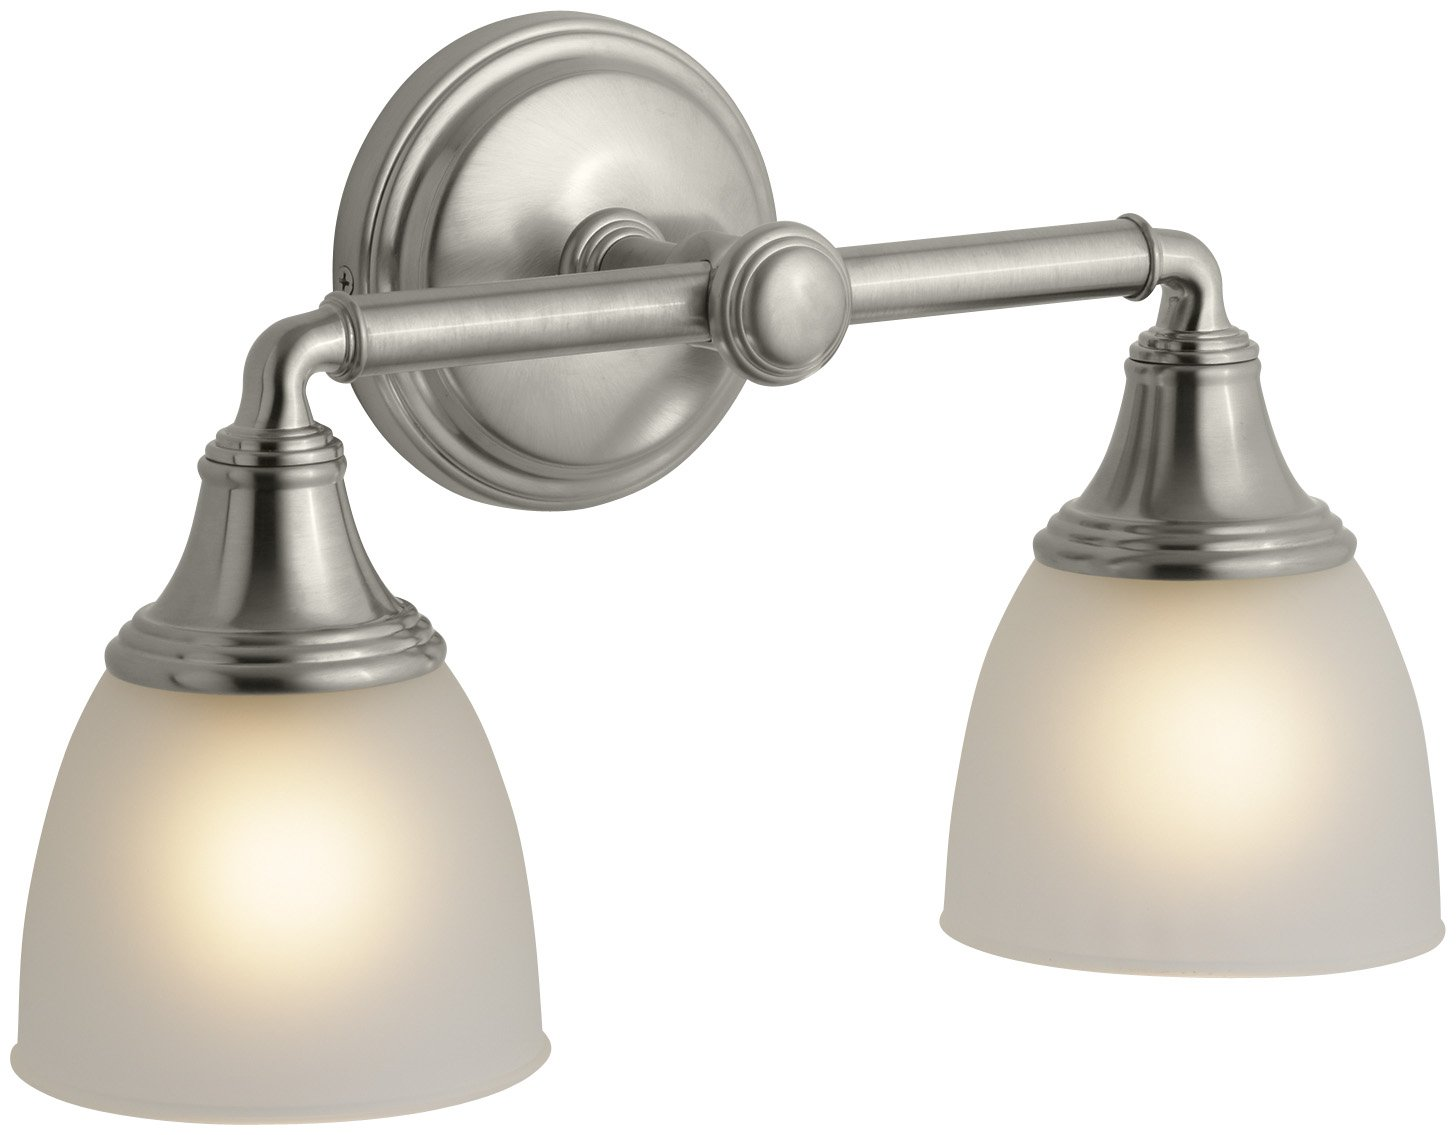 KOHLER KBN Devonshire Double Wall Sconce Vibrant Brushed - Polished nickel bathroom wall sconces